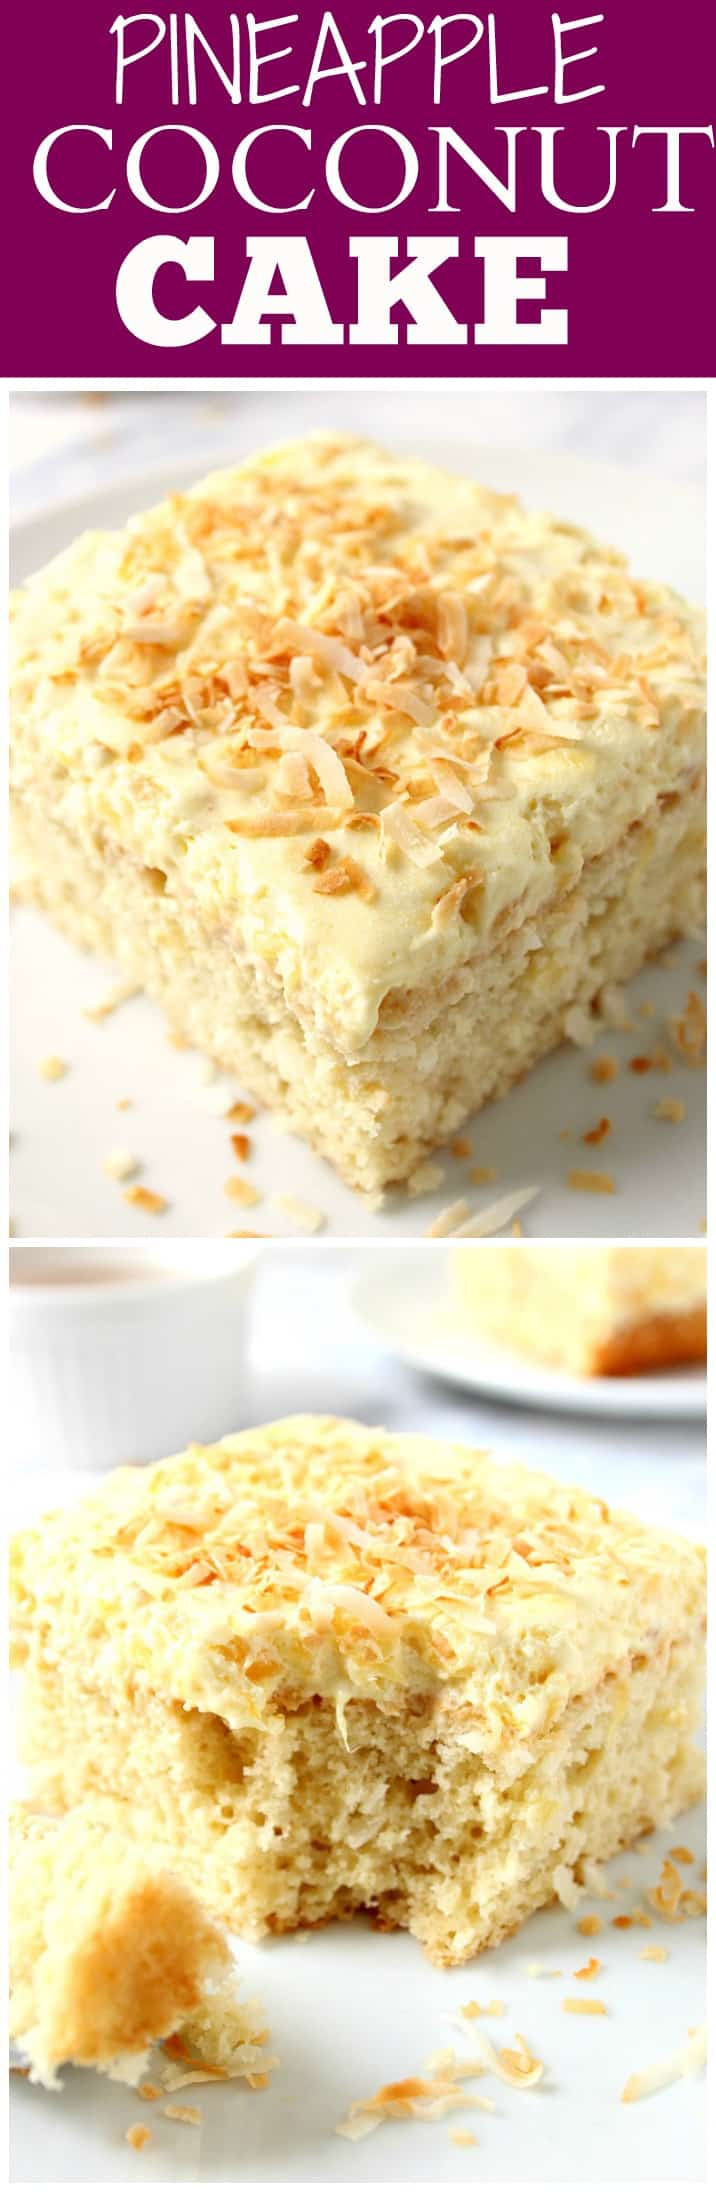 coconut pineapple cake recipe long Coconut Pineapple Cake Recipe